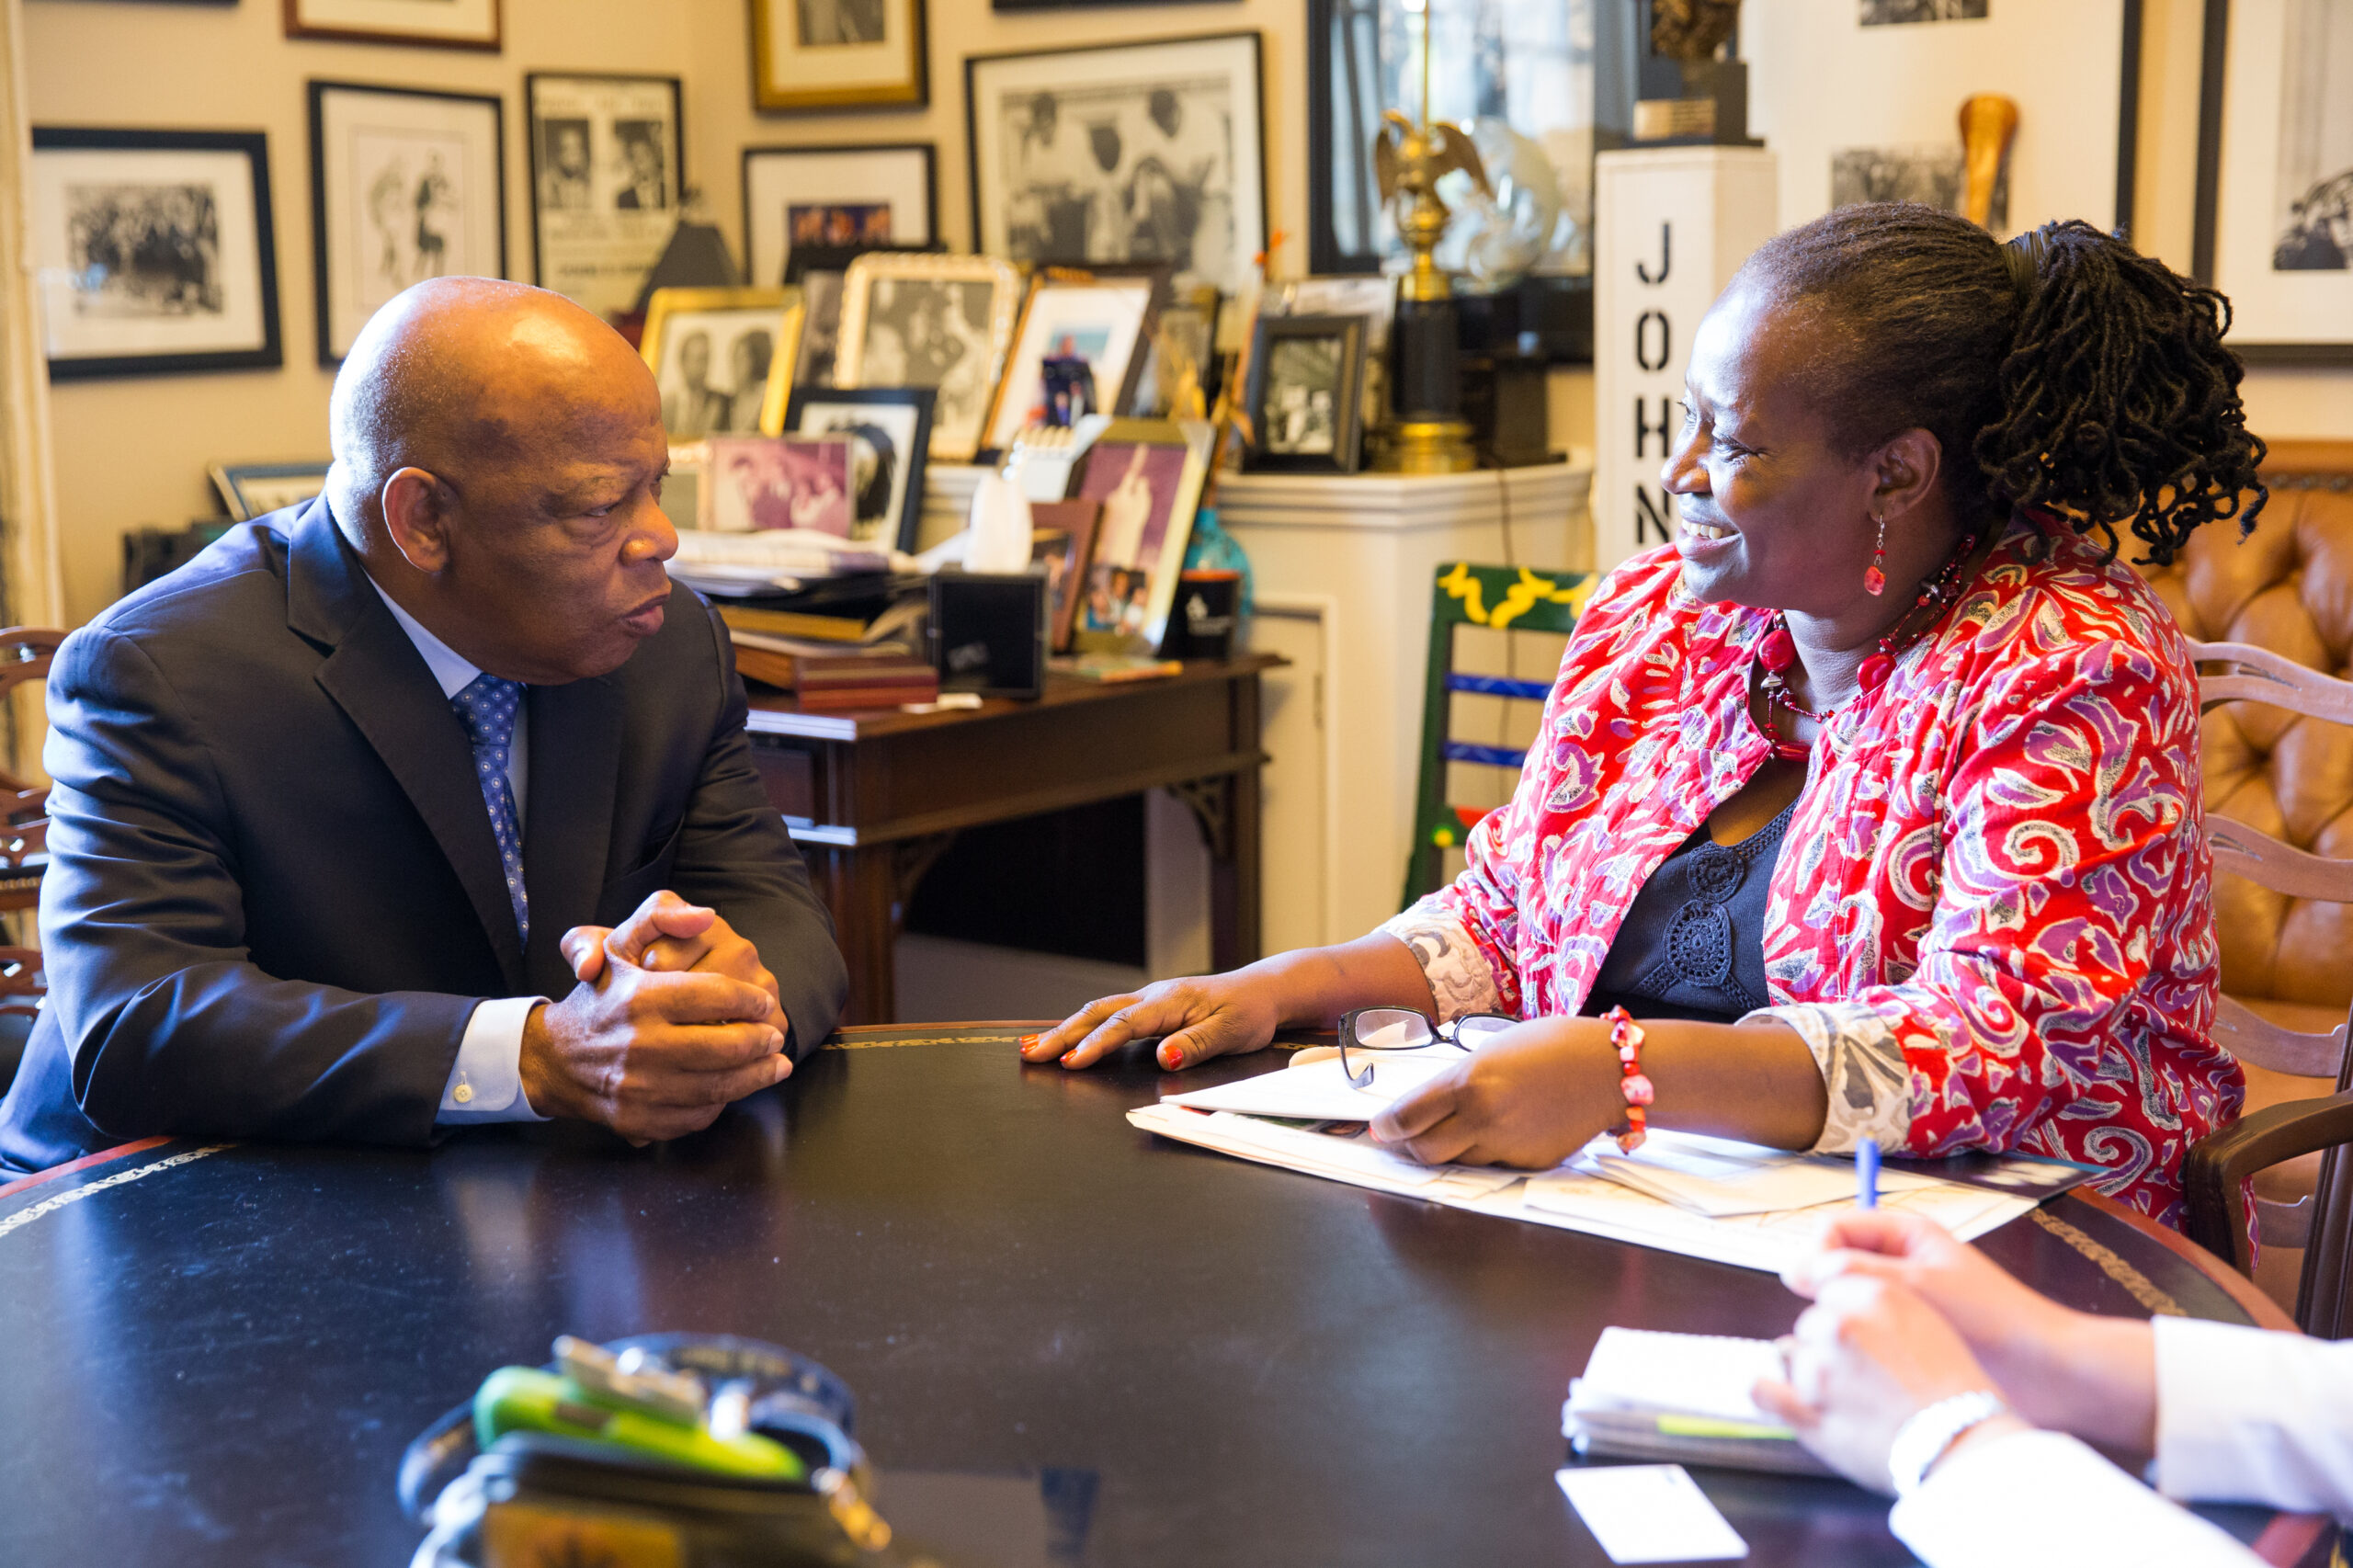 Meeting with Congressman John Lewis